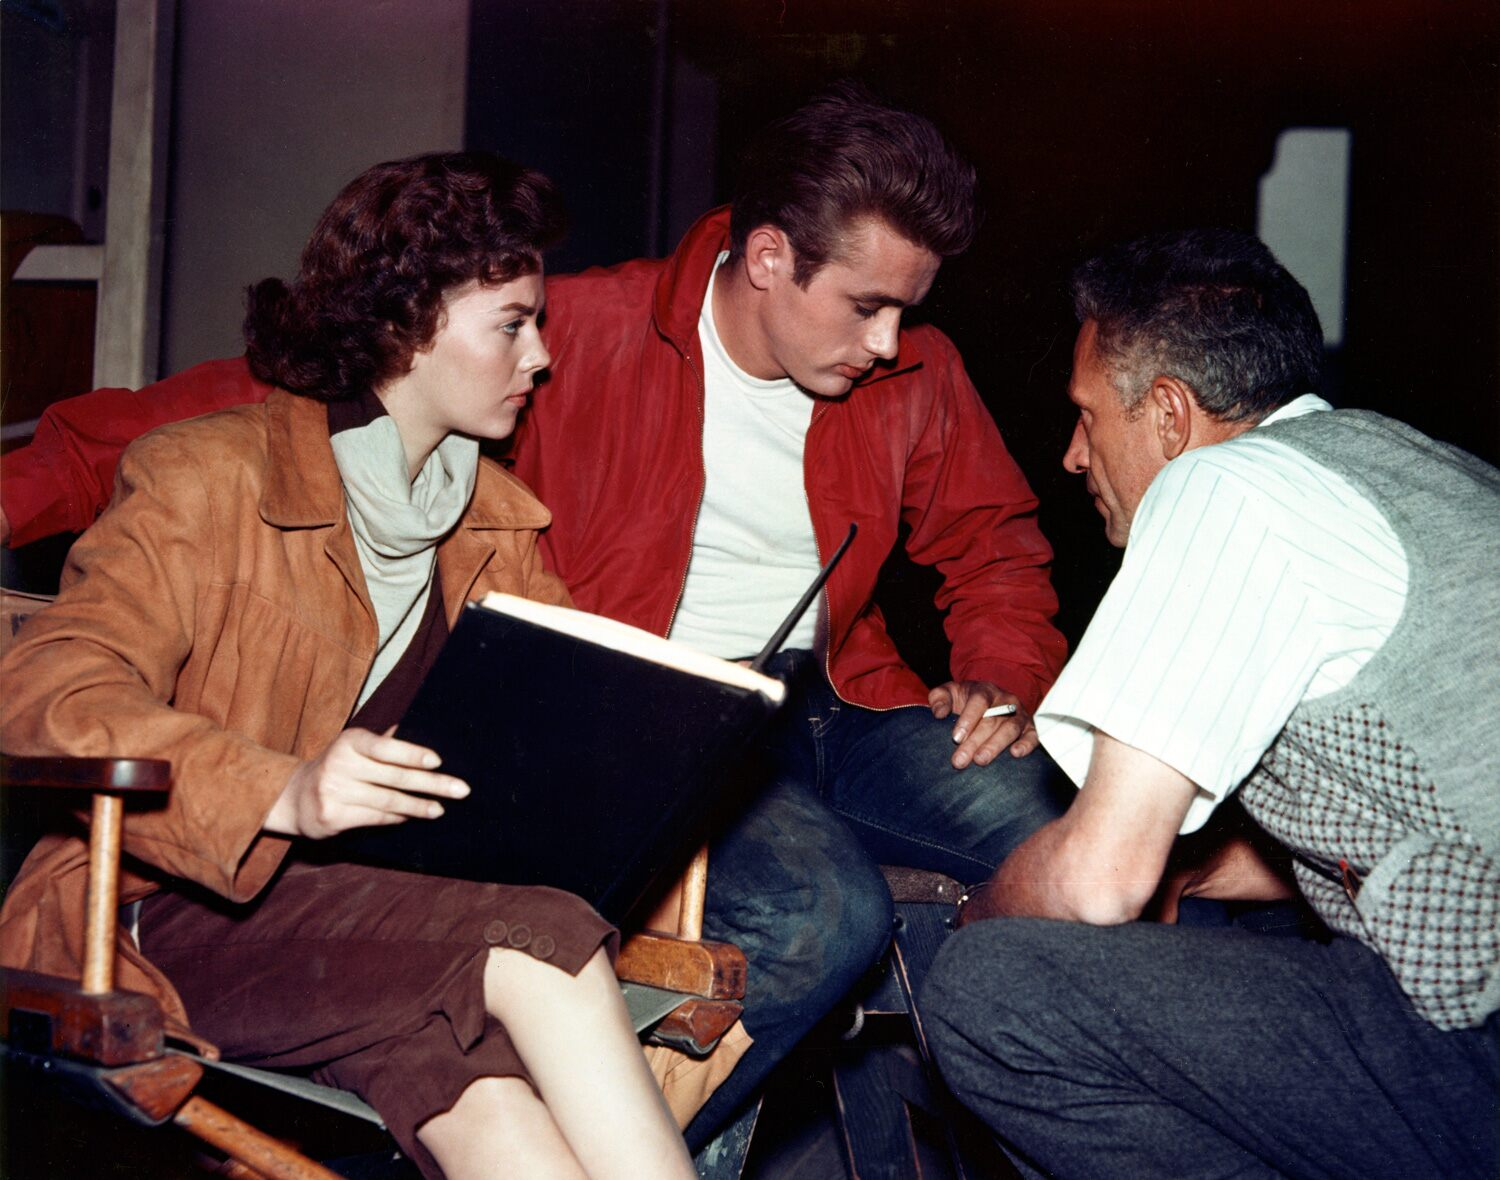 The filmmaker consults with James Dean and Natalie Wood during production of Rebel without a Cause. The film was started in black and white but switched to color and CinemaScope early in production.